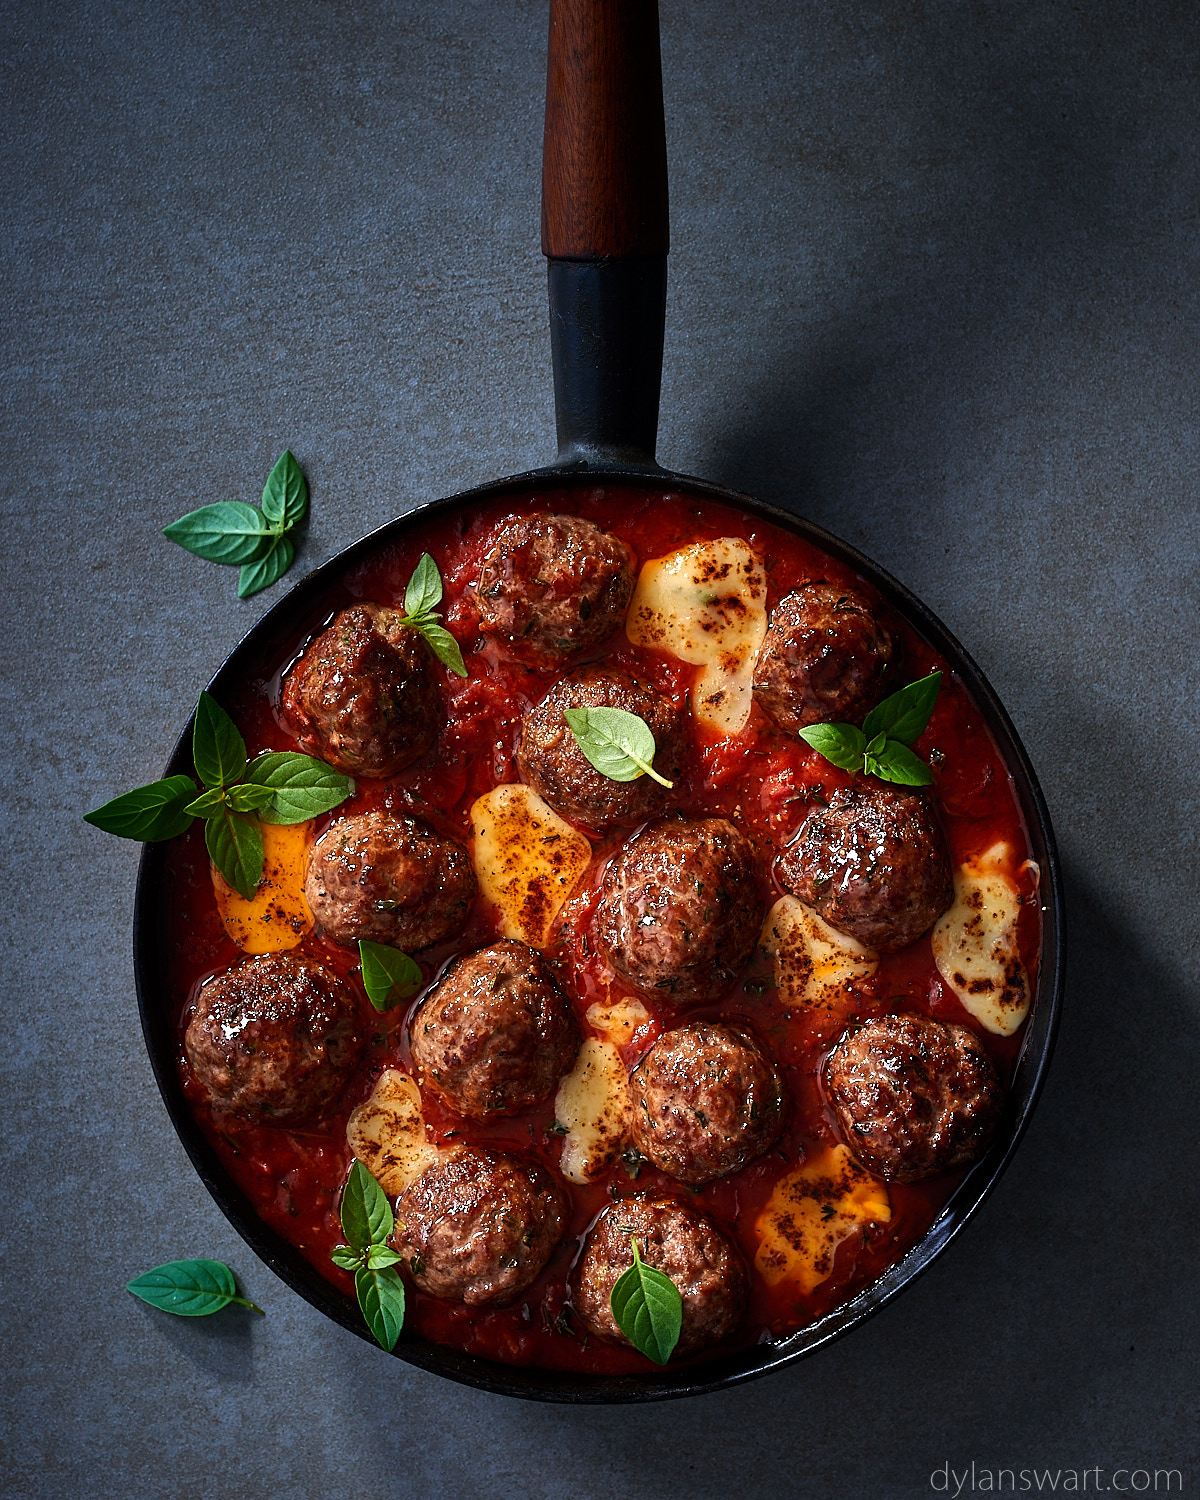 Herbed meatballs in tomato sauce with melty mozzarella